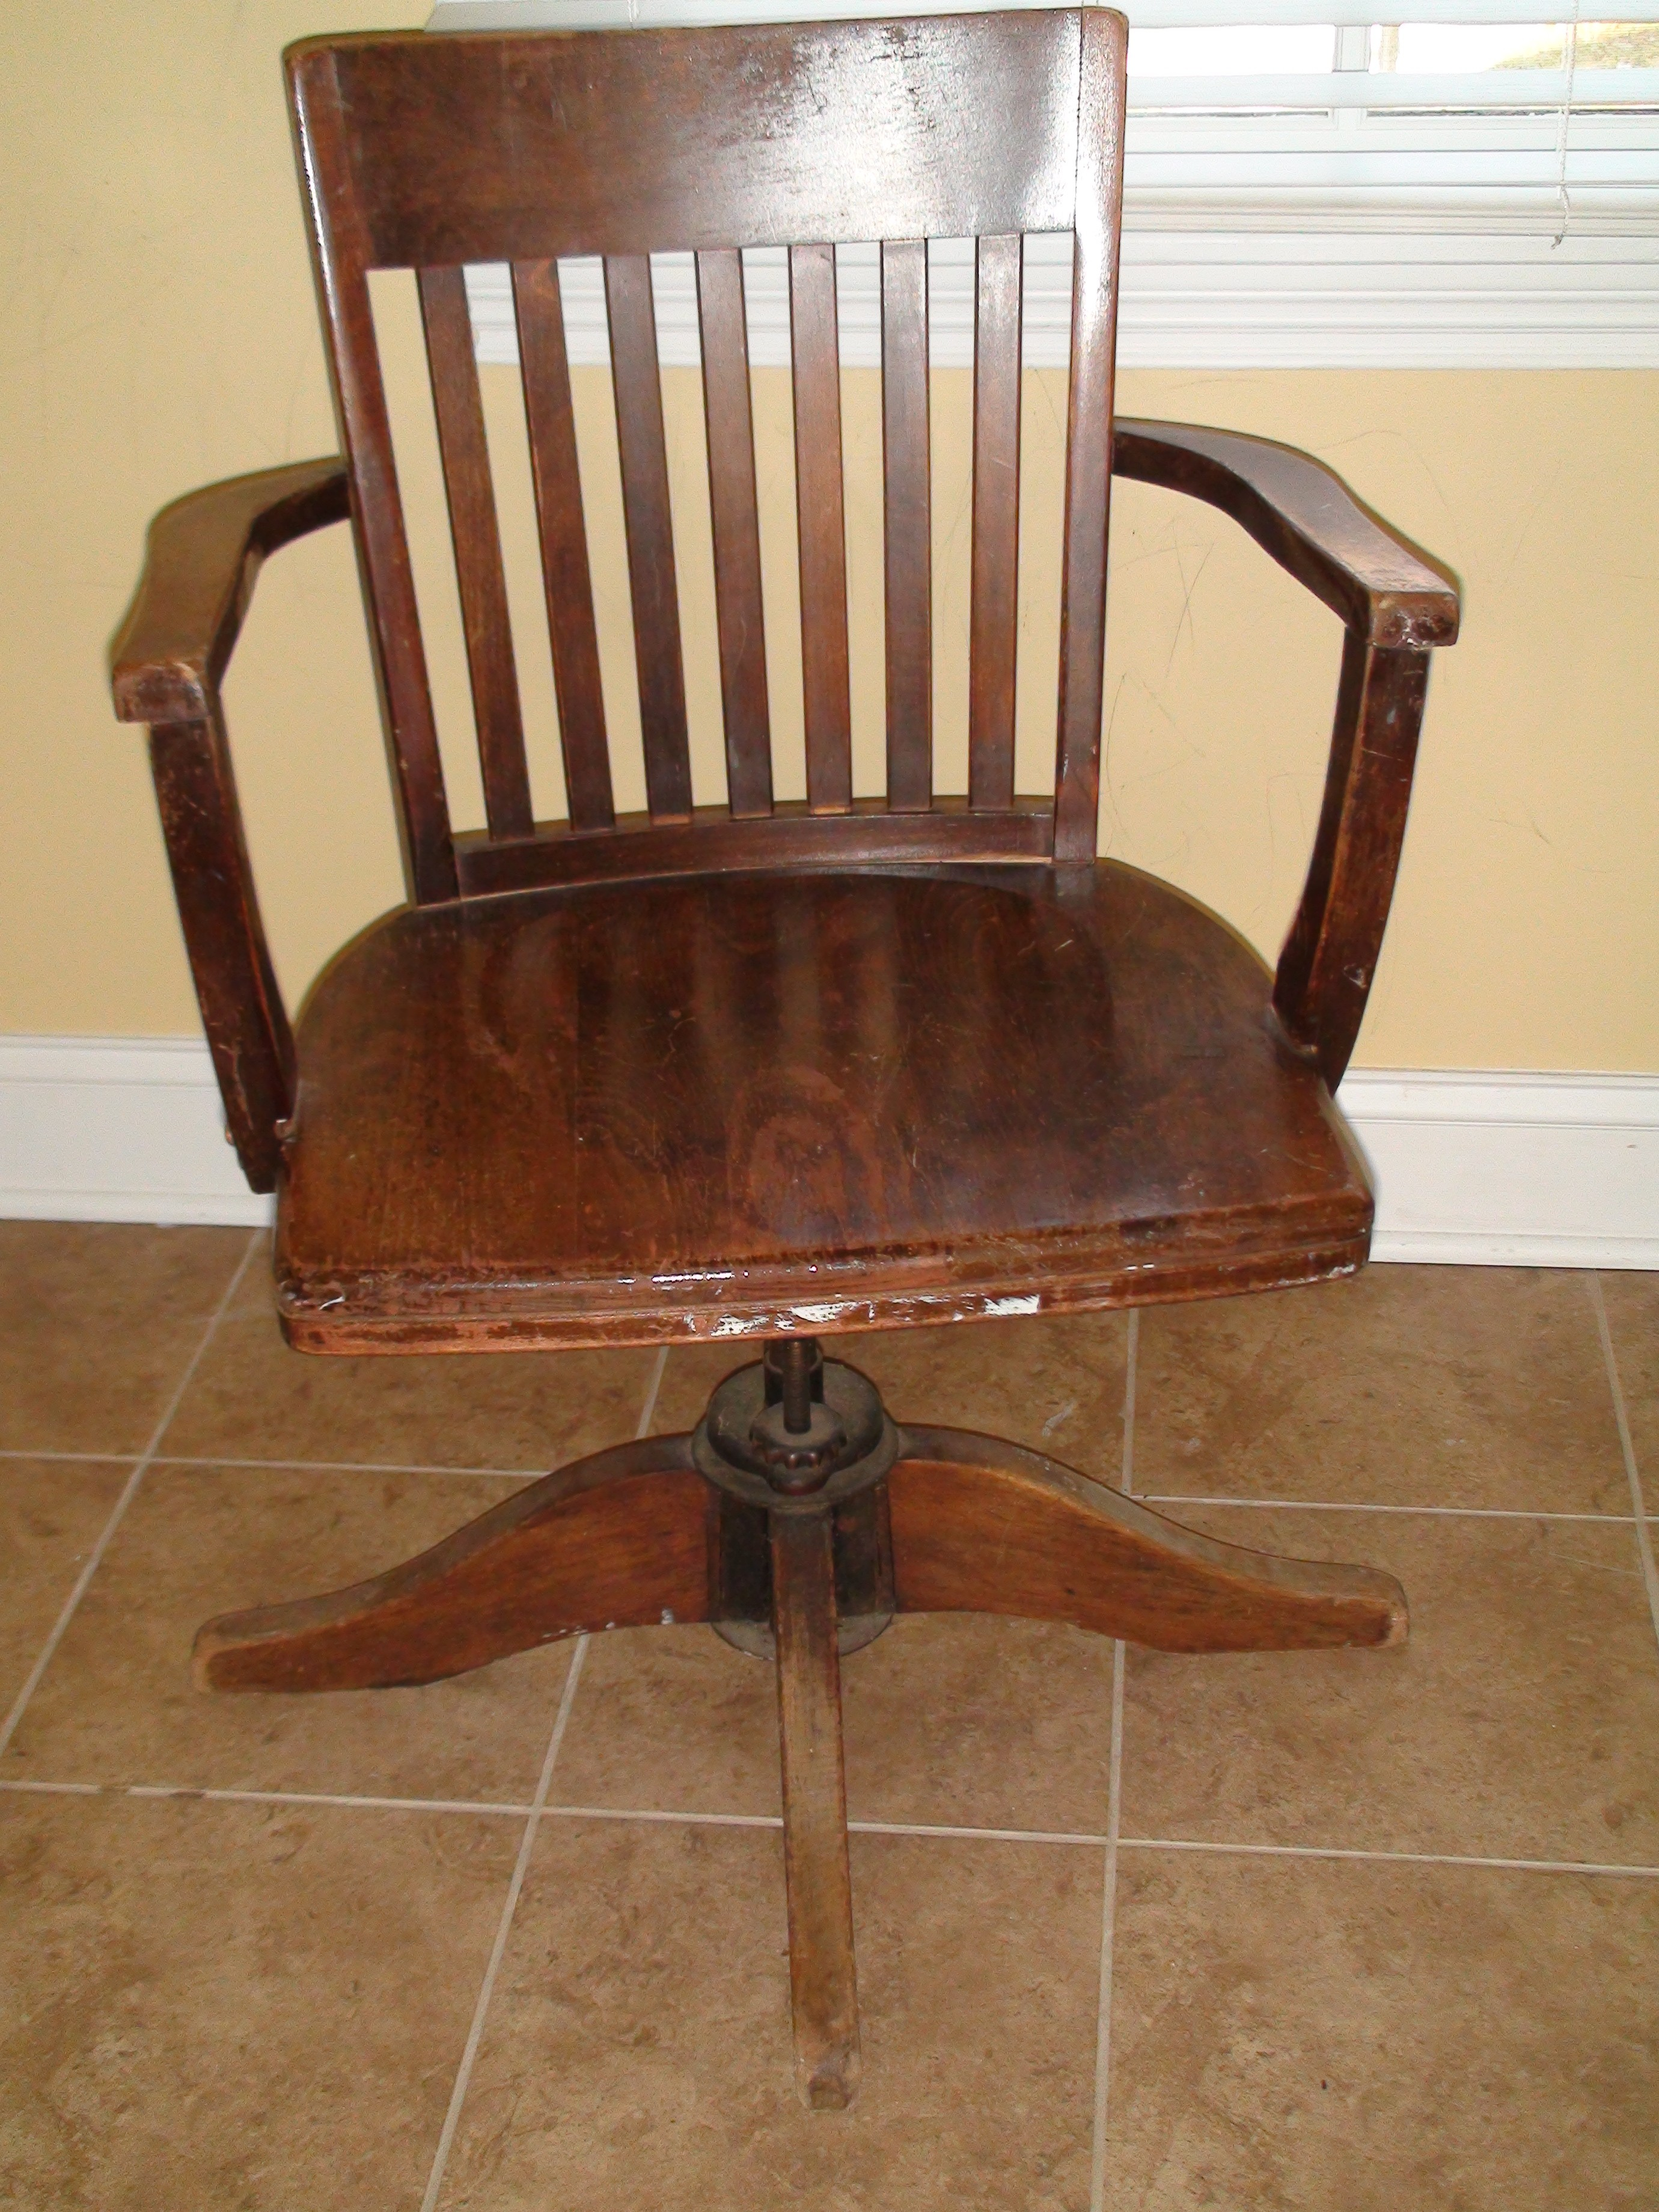 antique wooden desk chair Home Office: Refinishing an Antique Desk & Chair | One Home Made antique wooden desk chair